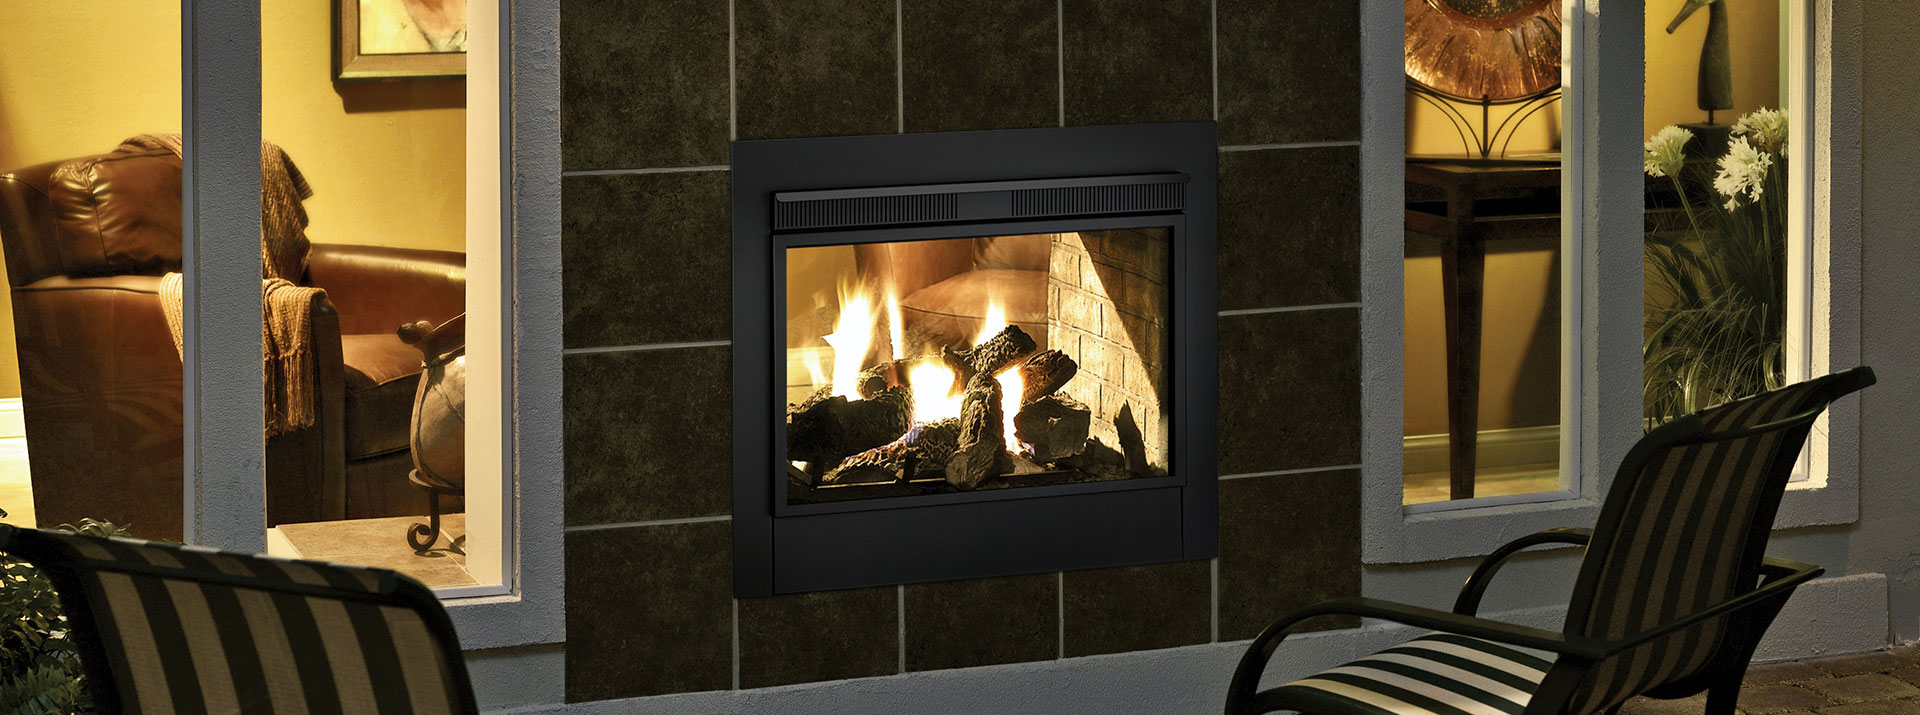 monessen csvf series brown gas iron enamel stoves vent shown in vfcastironstoveenamel free cast fireplace